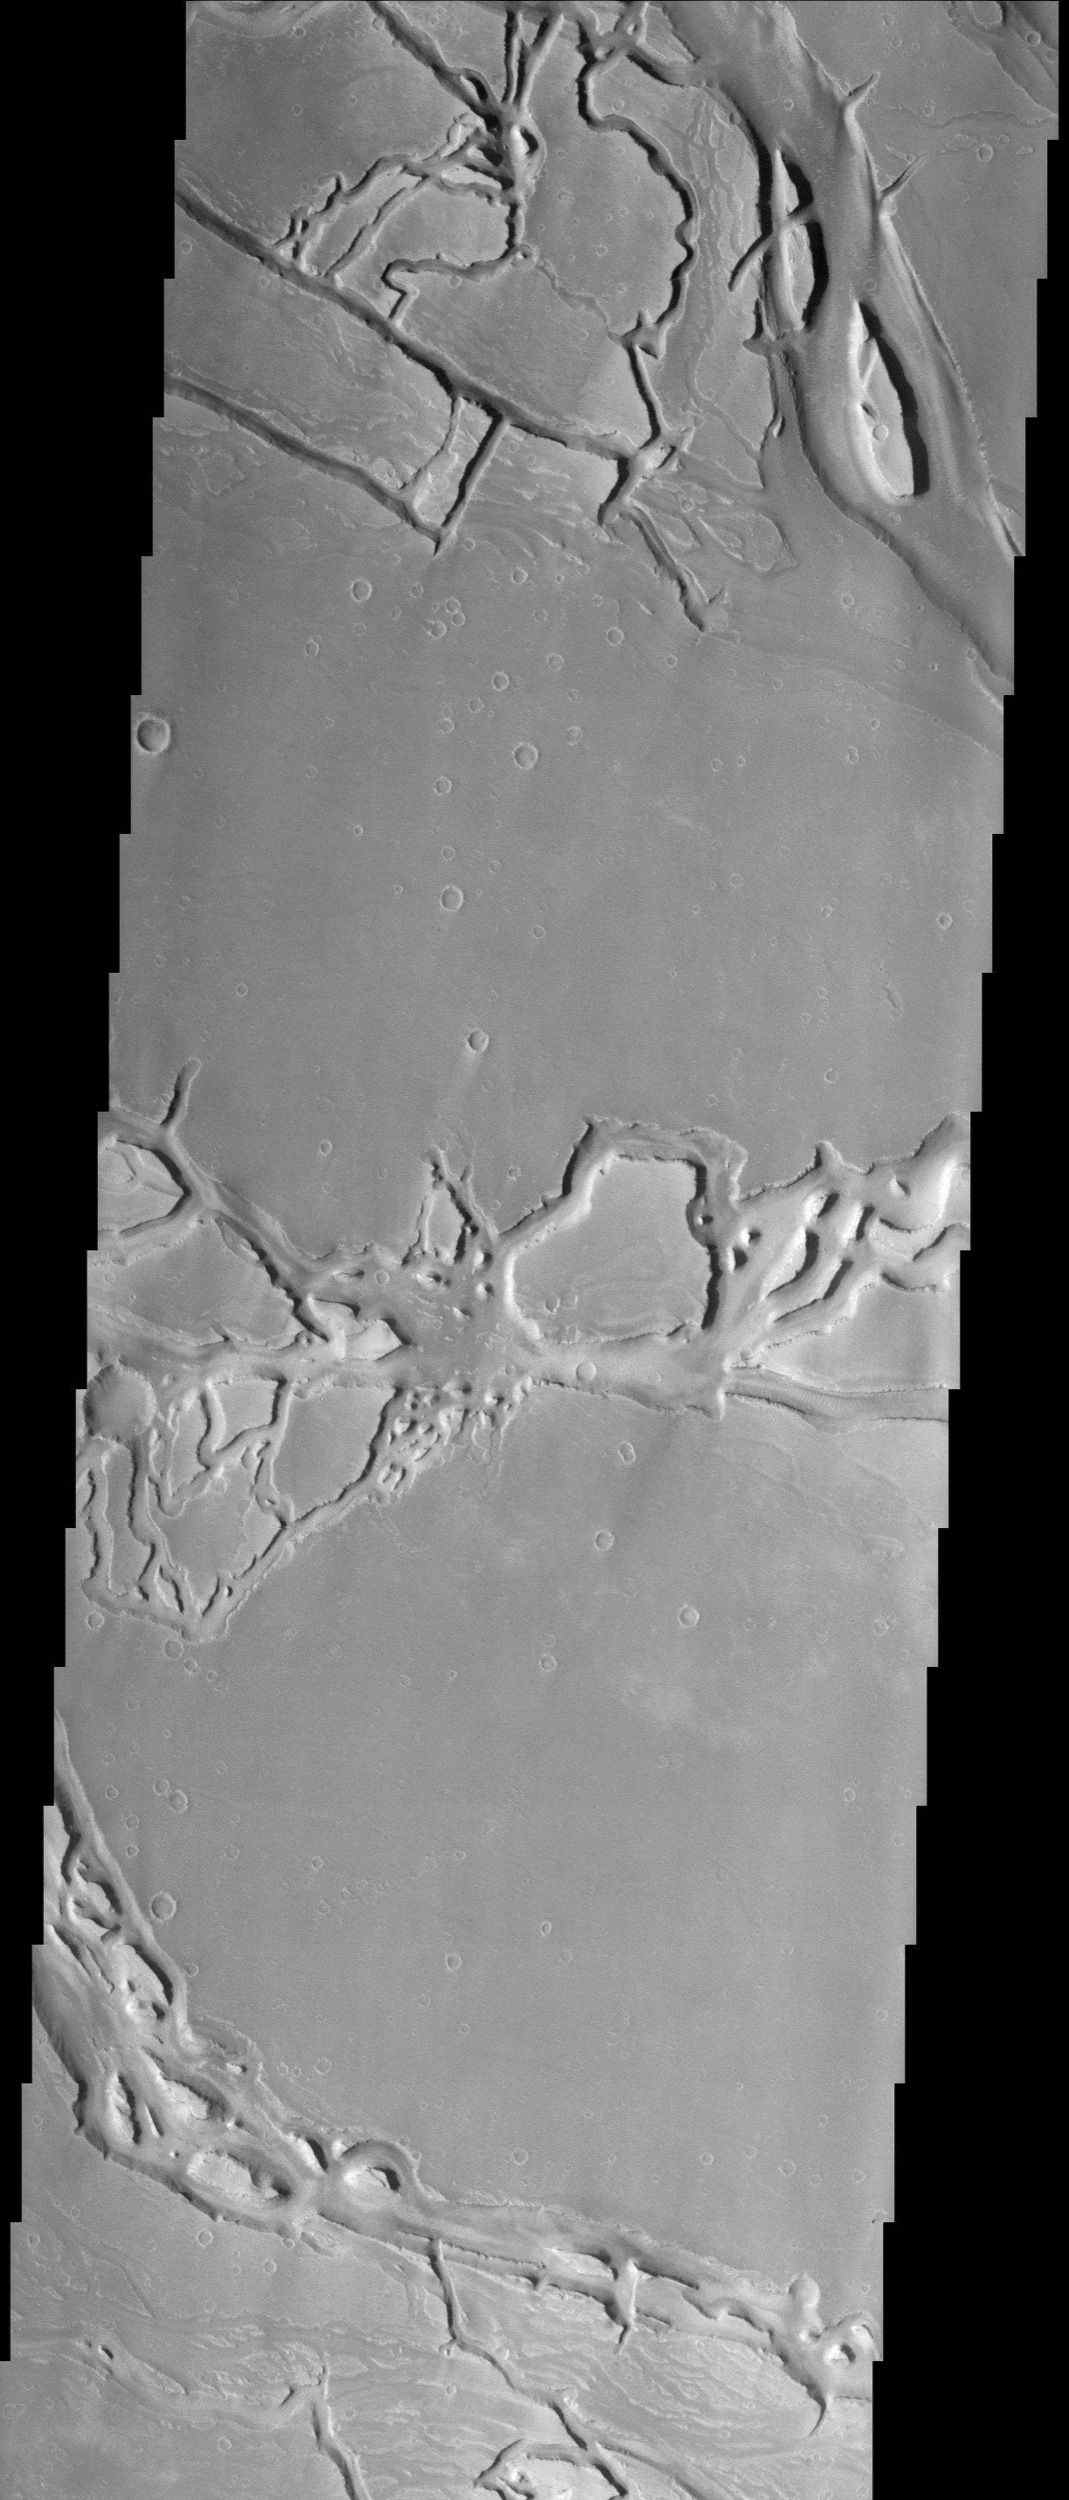 The force of moving water from a flood carved these teardrop-shaped islands within Granicus Valles, imaged here by NASA's Mars Odyssey spacecraft. The orientation of the islands can be used as an indicator of the direction the water flowed.